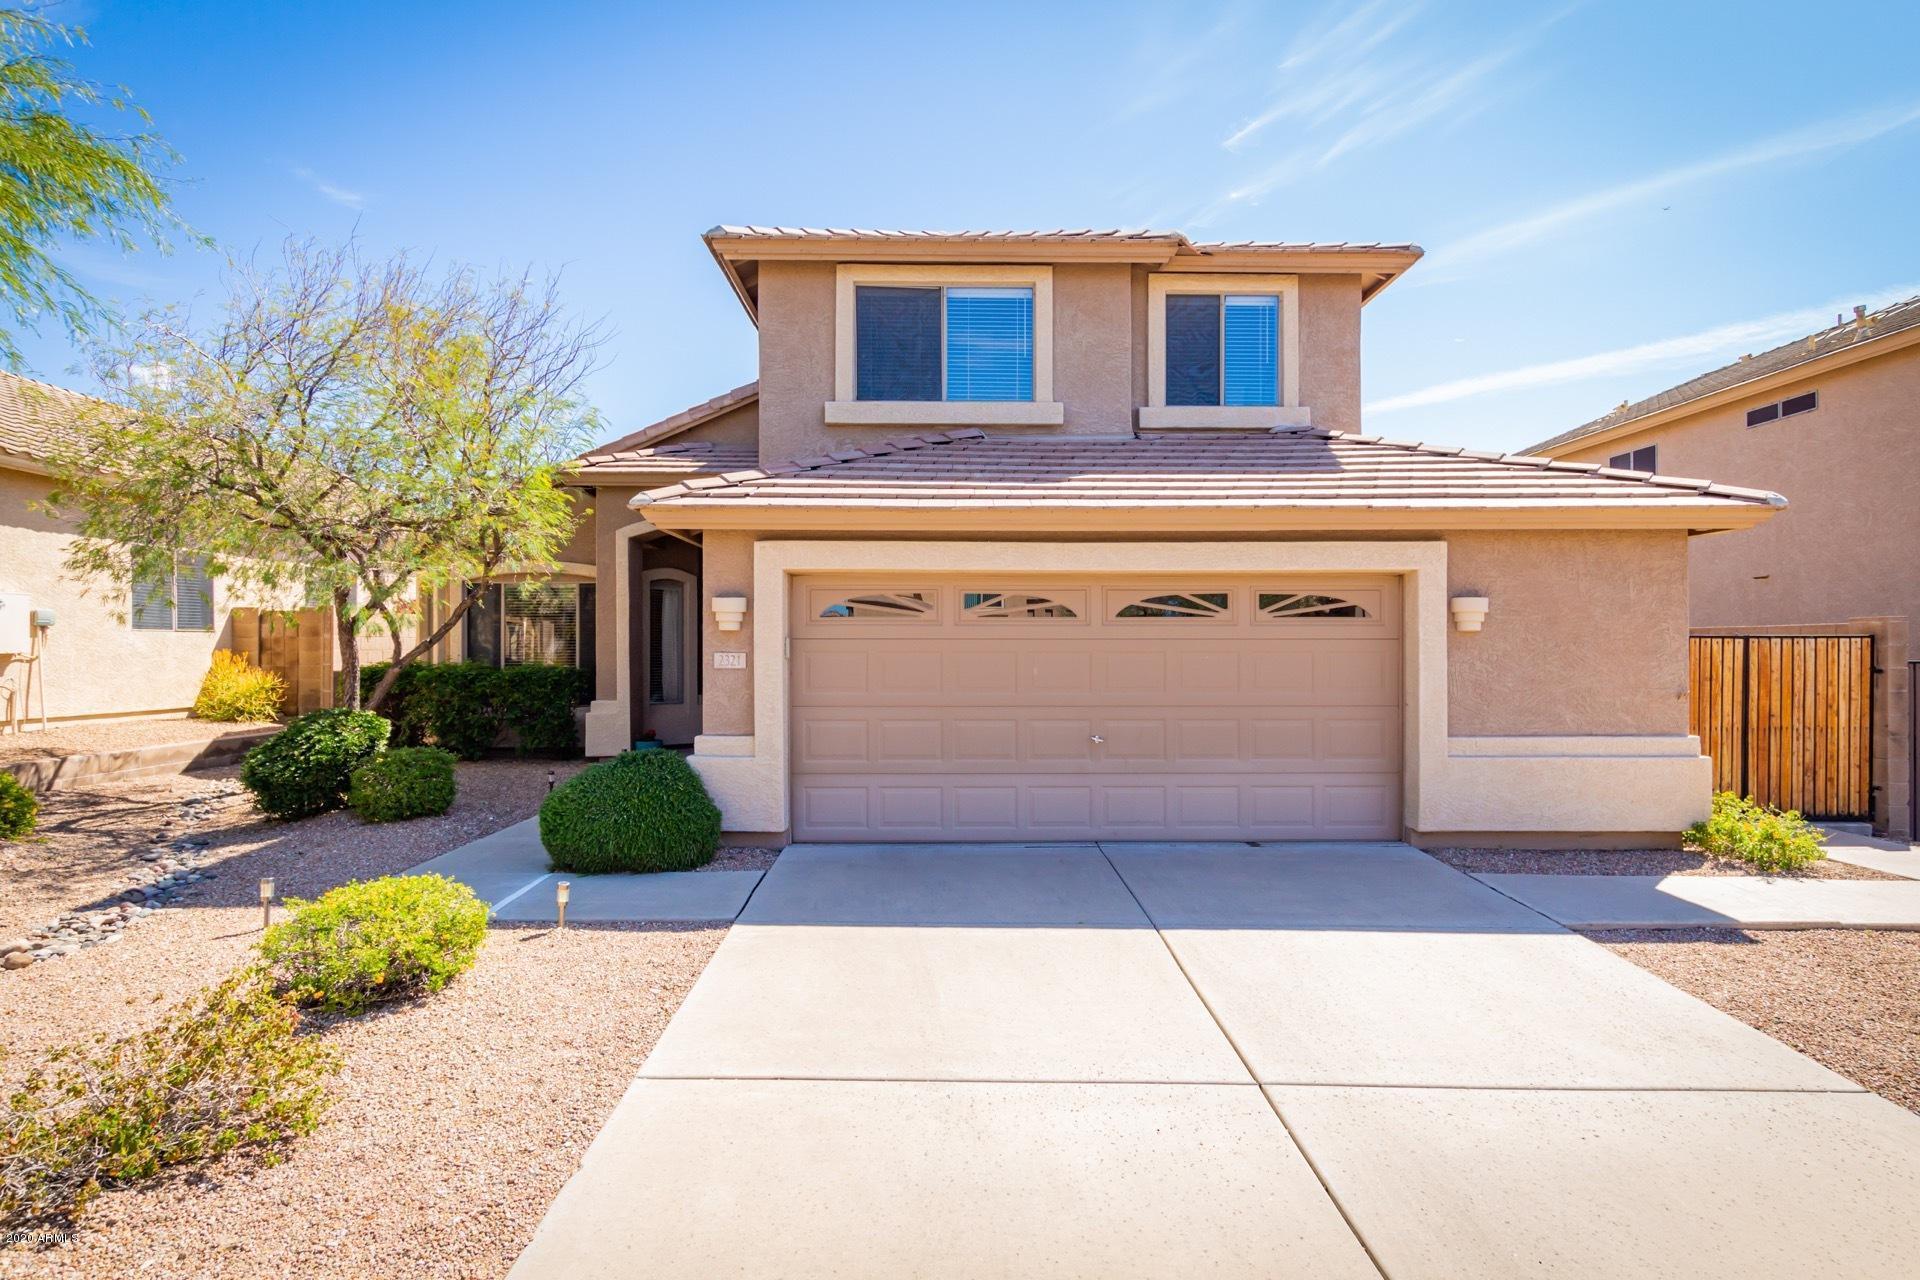 Photo of 2321 N Cabot Circle, Mesa, AZ 85207